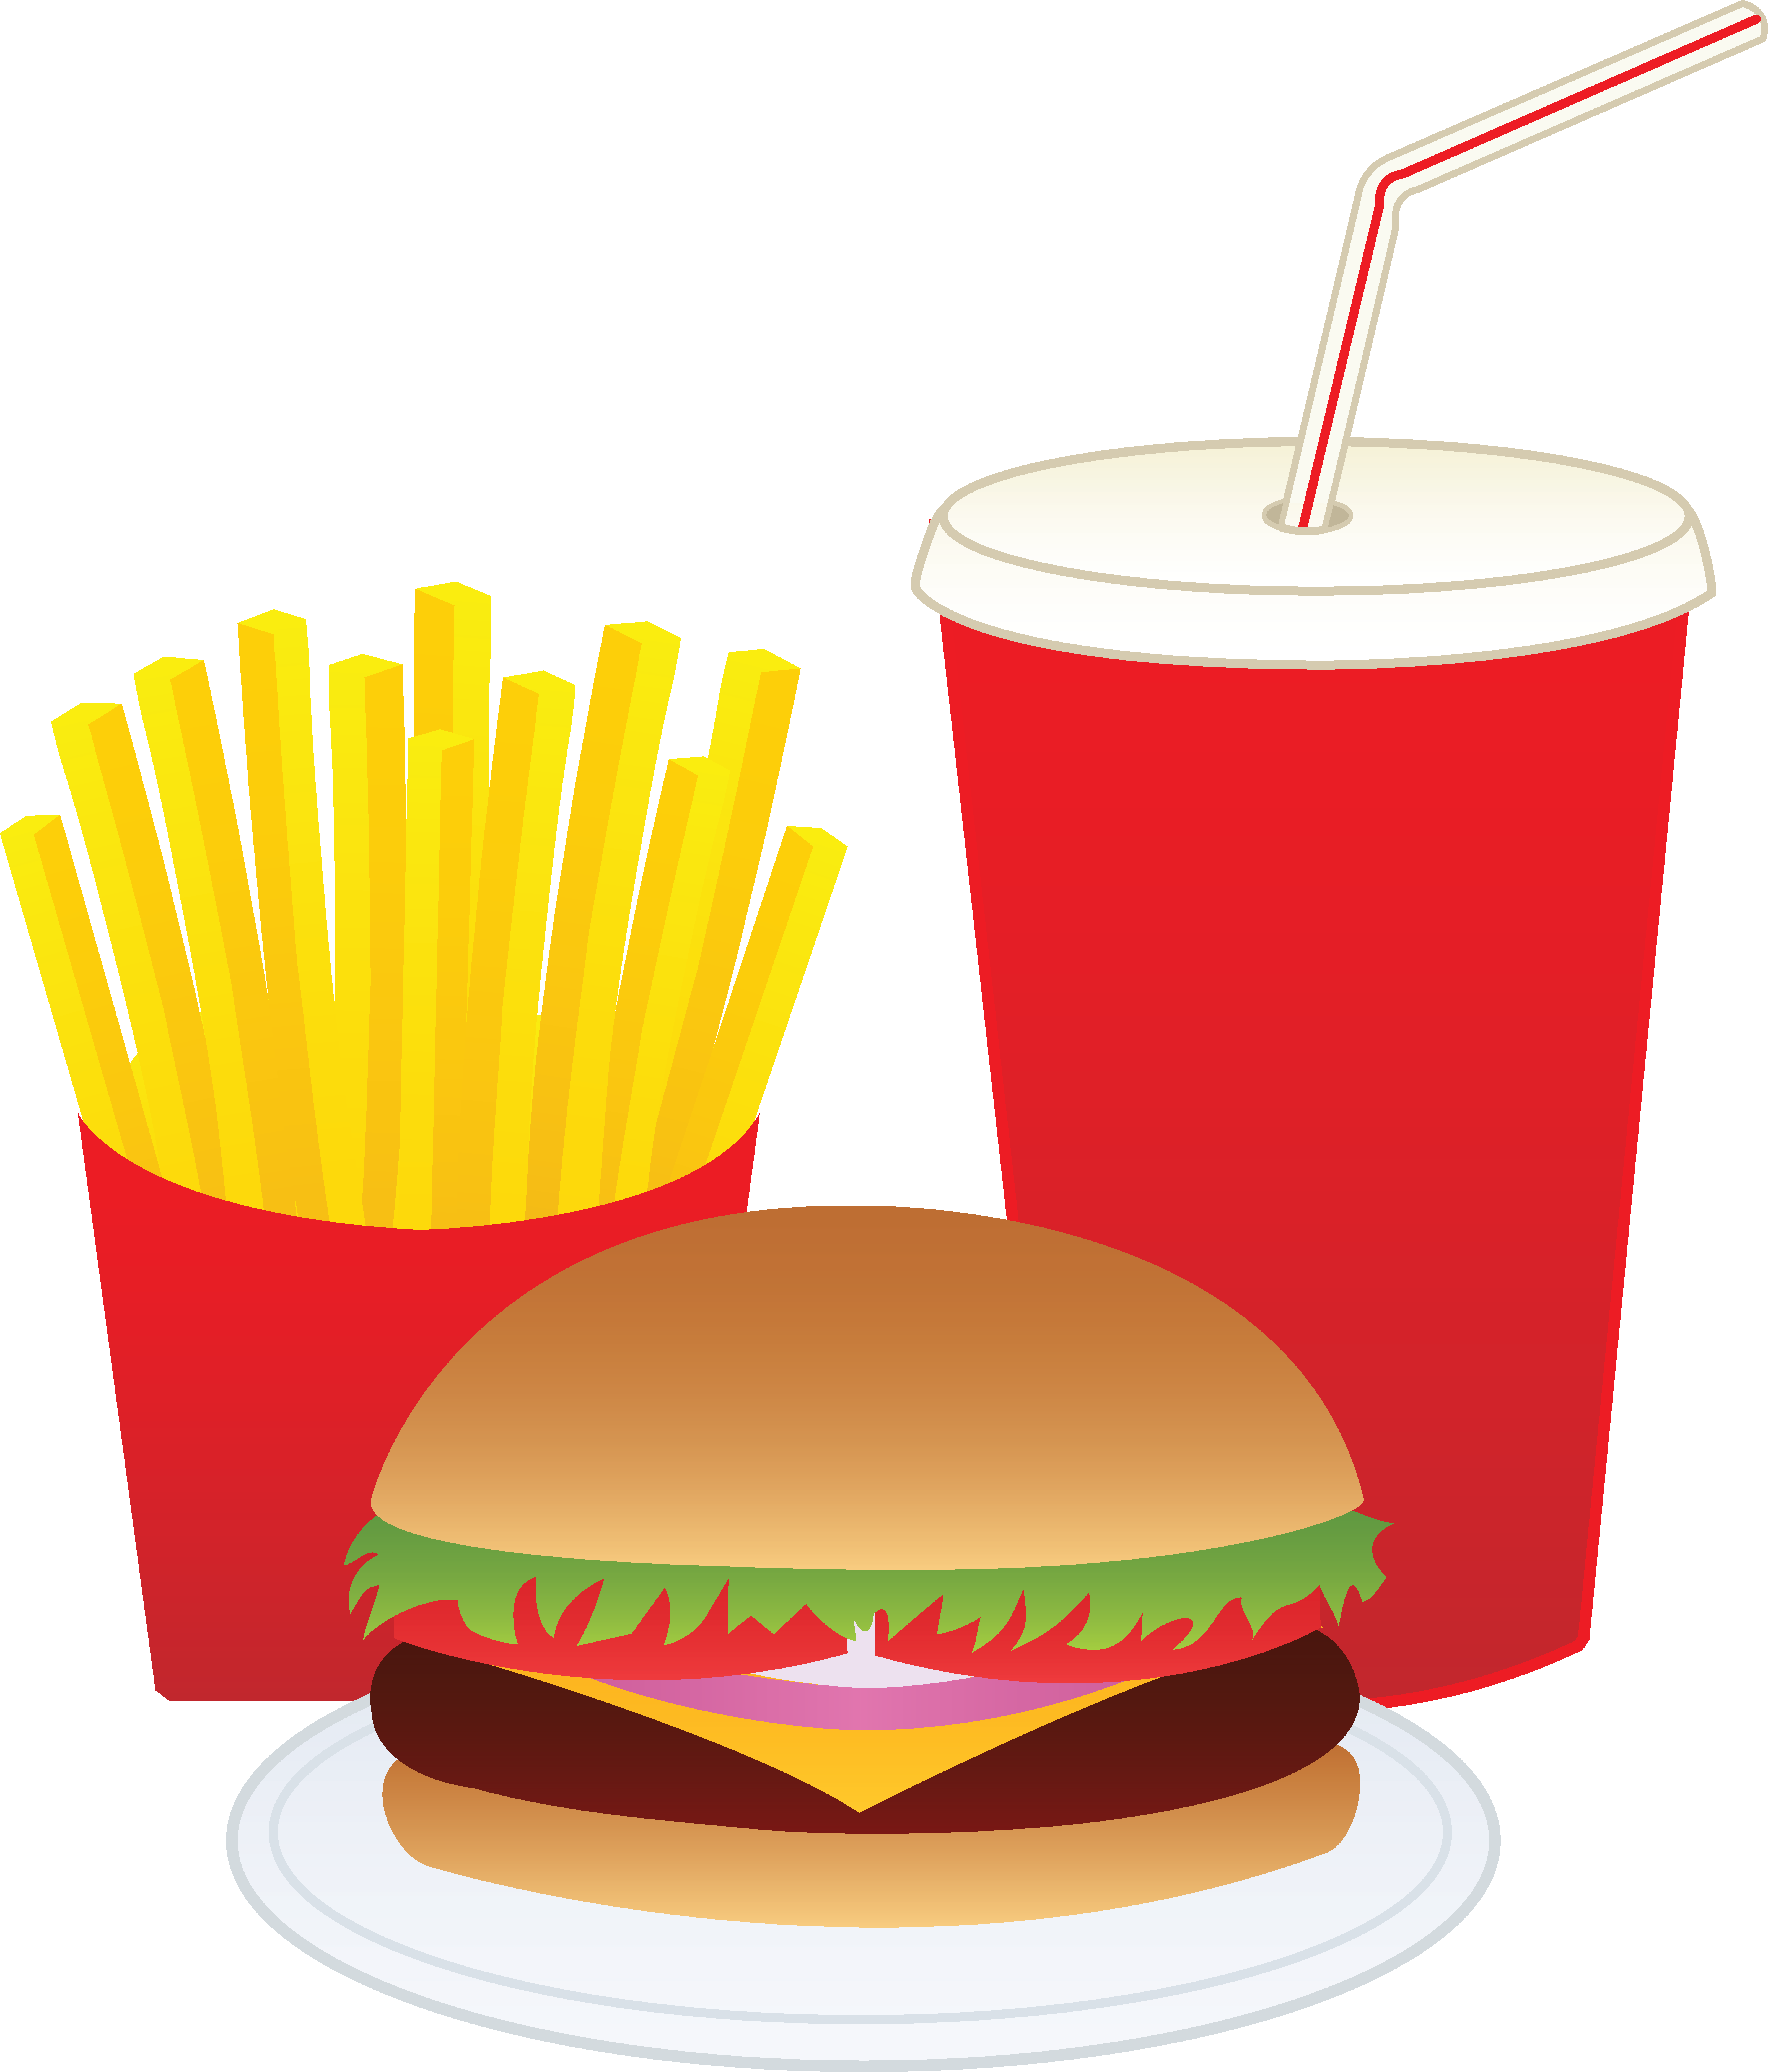 Fast food clipart drink. Free burger meal cliparts